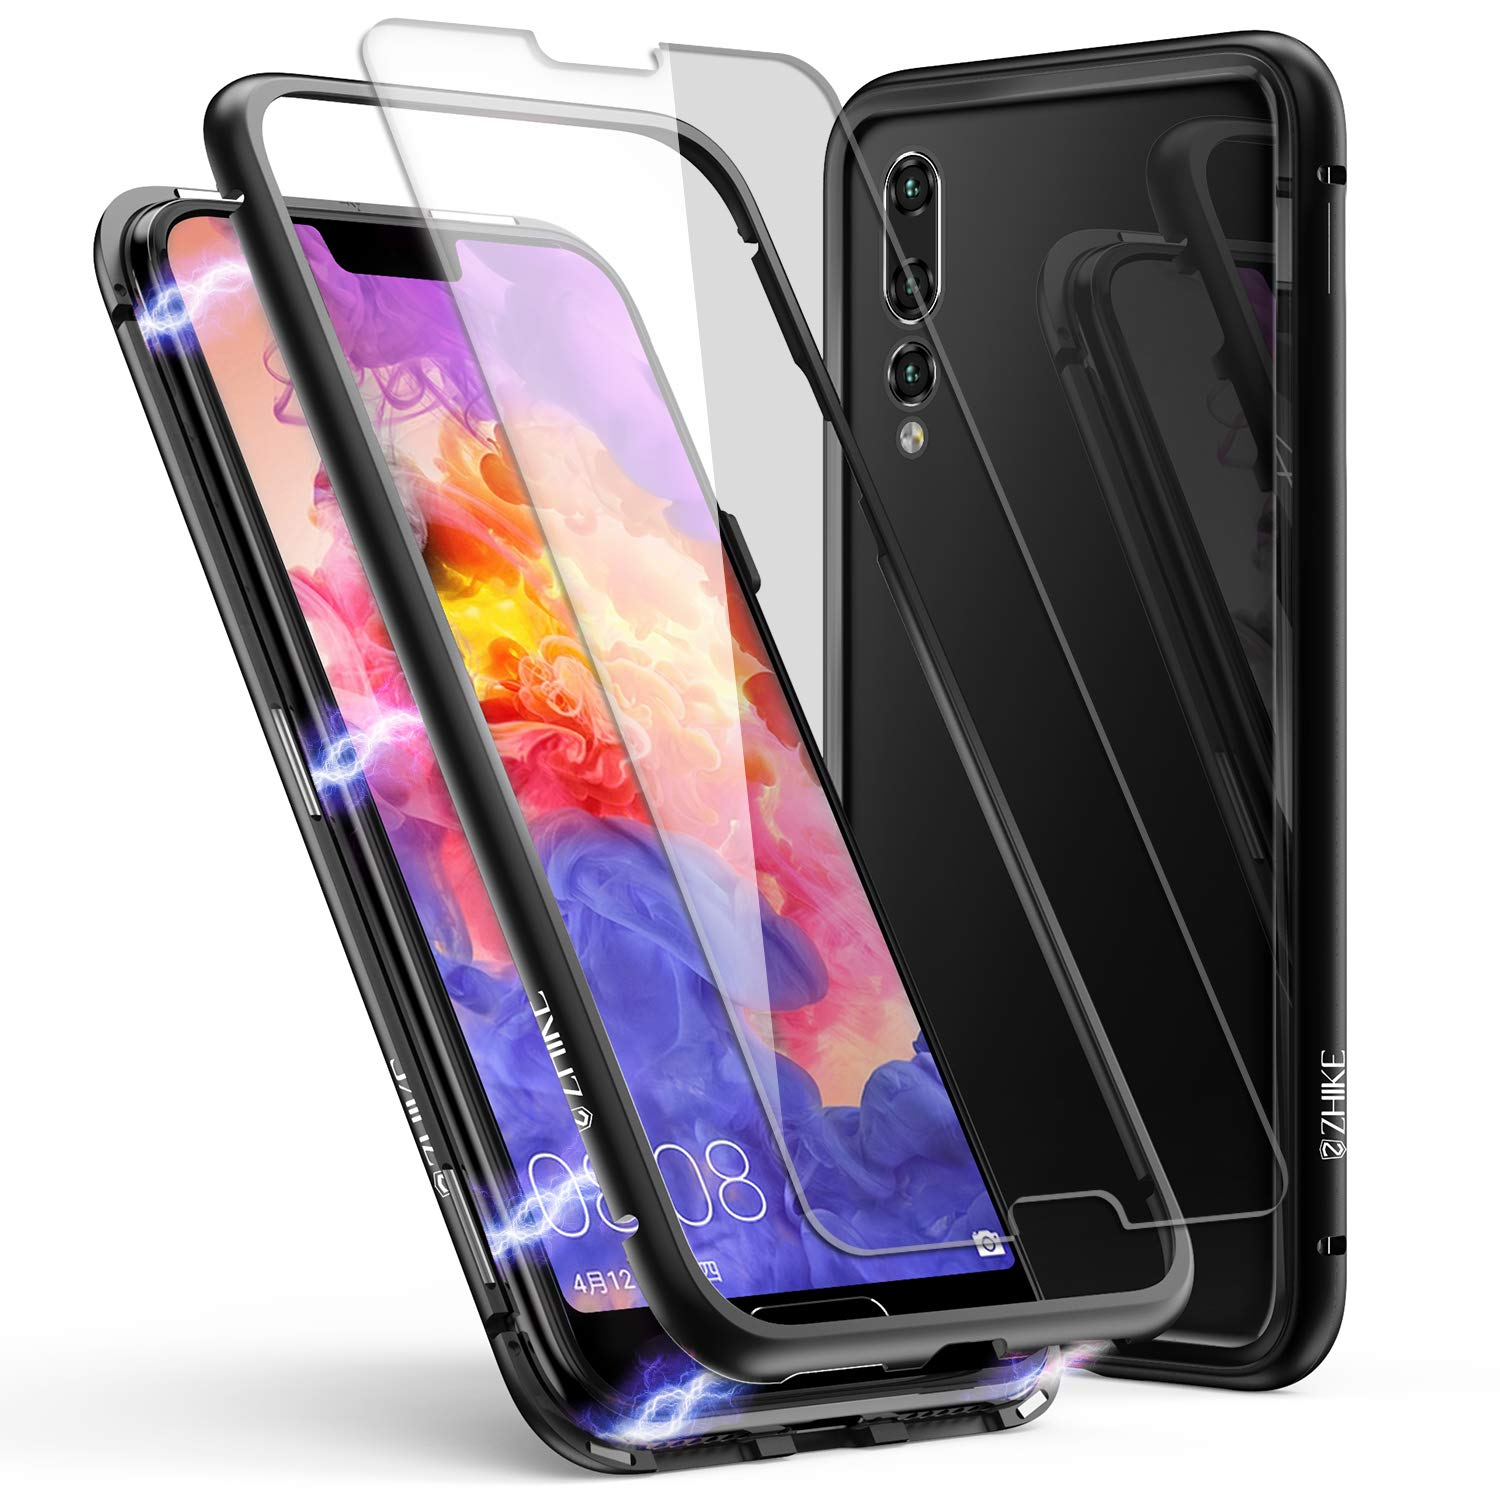 sale retailer 67cd8 0e2c1 Huawei P20 Pro Case, ZHIKE Magnetic Adsorption Case Metal Frame Tempered  Glass Back with Built-in Magnet Cover for Huawei P20 Pro (Clear Black)